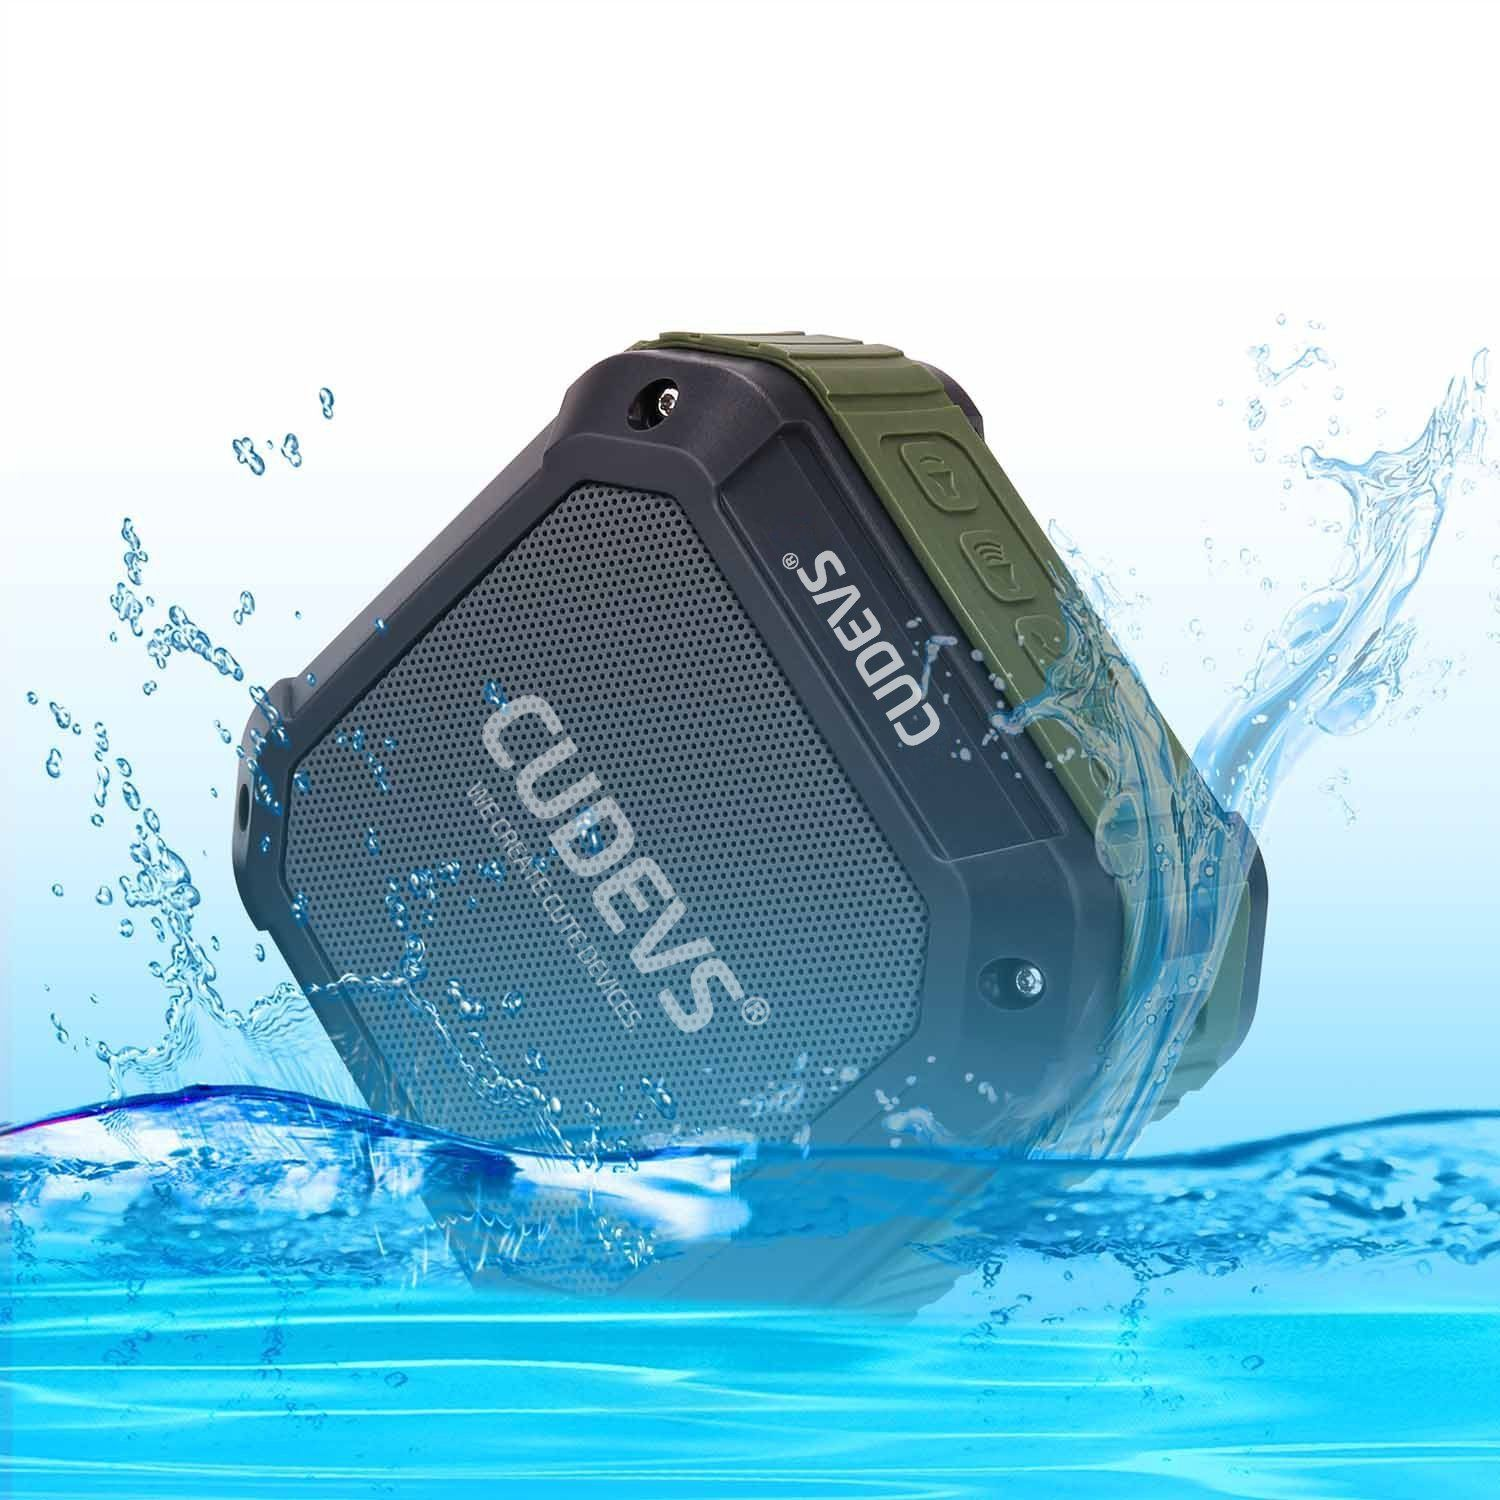 Cudevs M3 Bluetooth Speakers, Wireless, Portable and Waterproof for ...